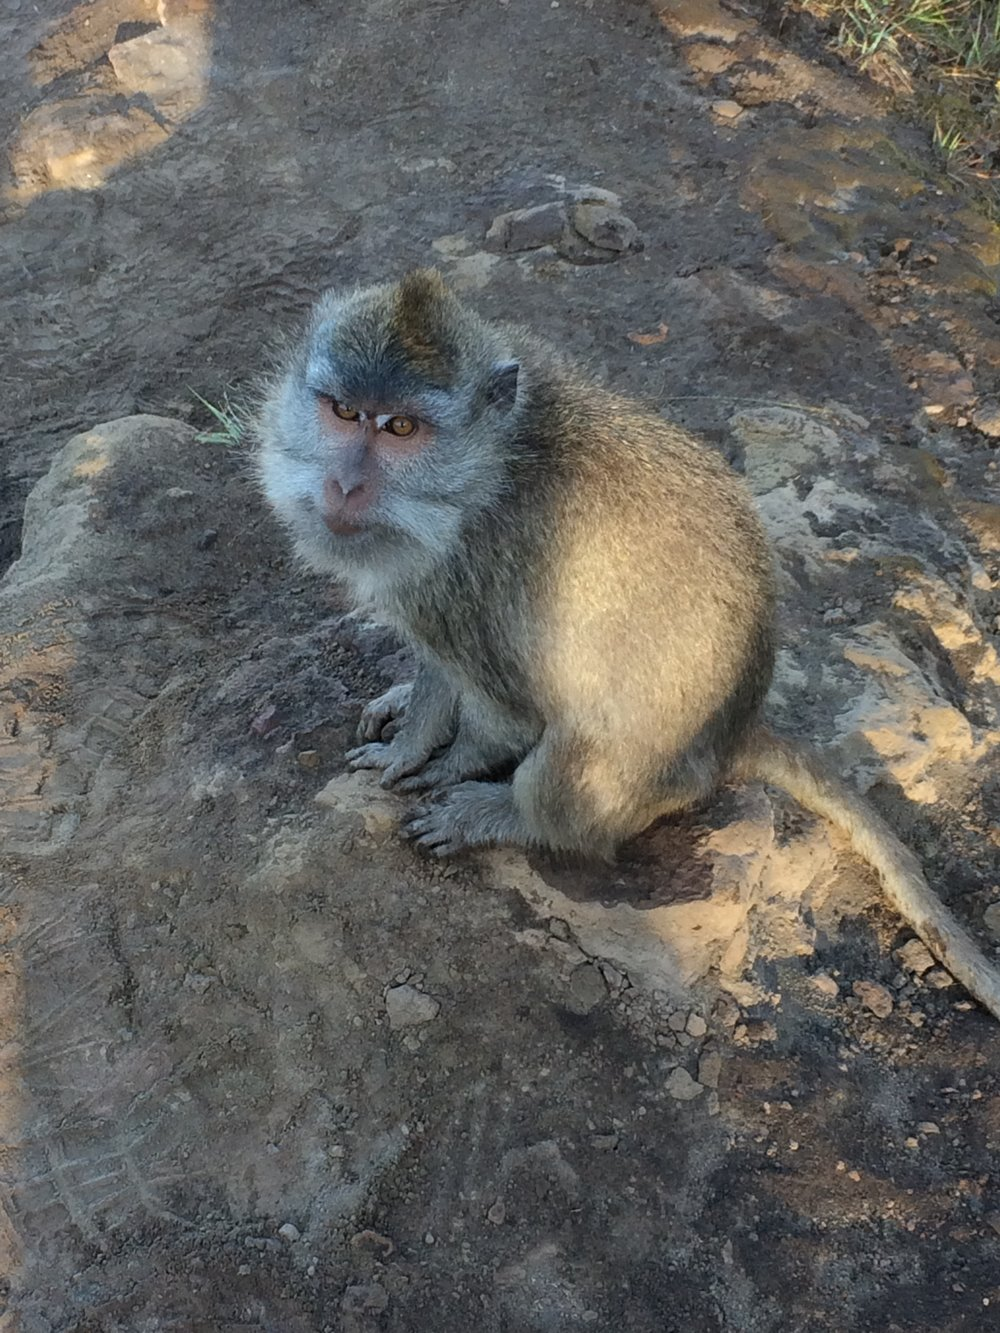 Met a few more monkey friends on our way down the mountain. These ones were a bit less scary.